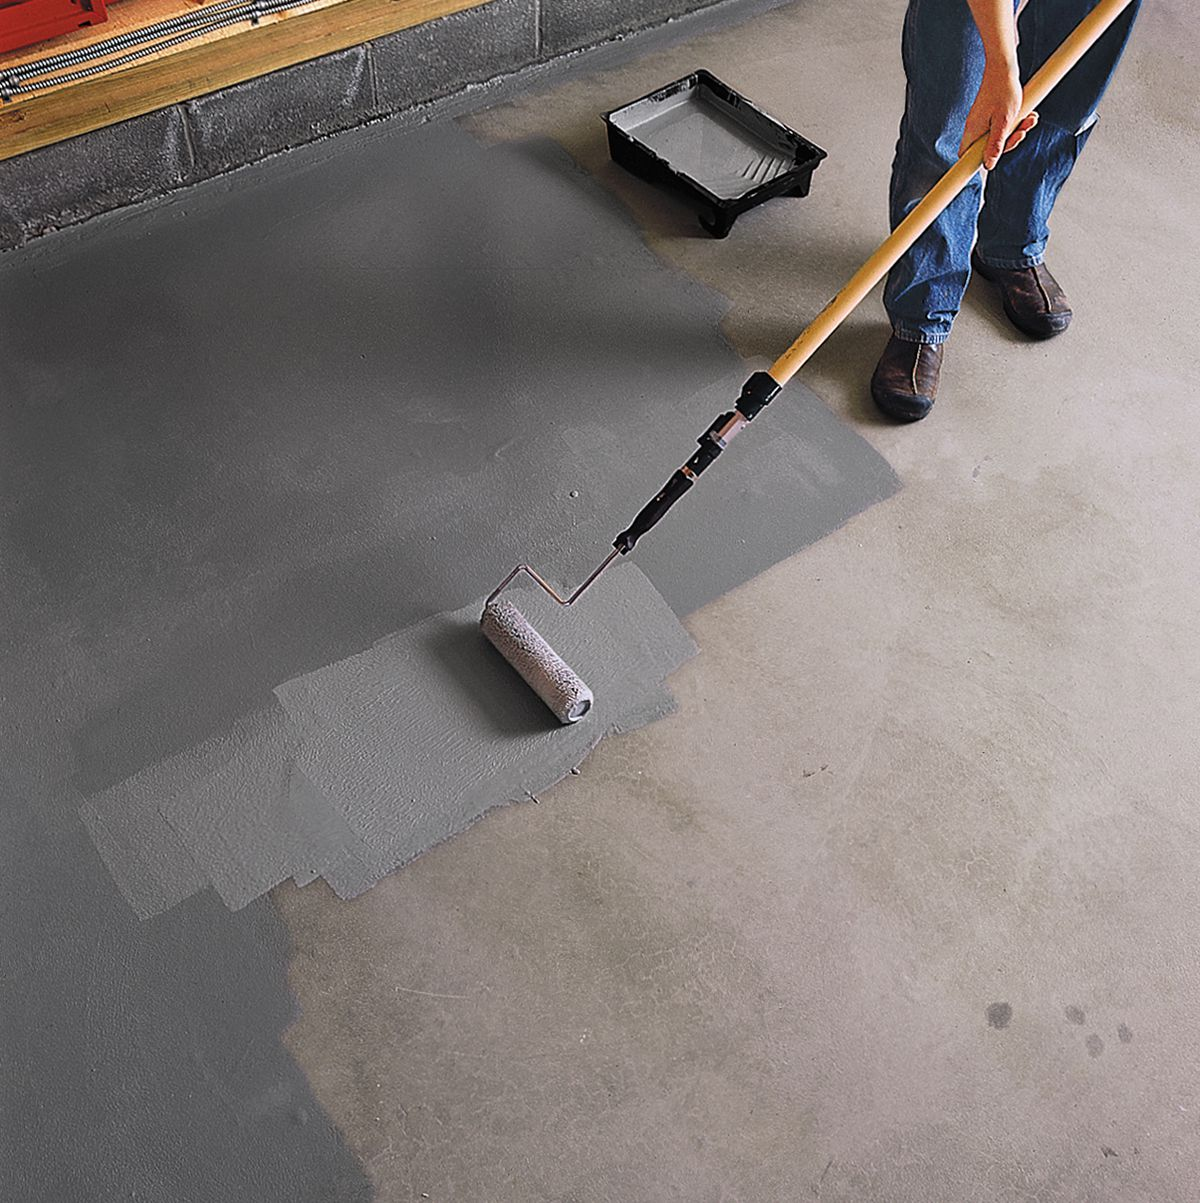 Person using a roller to put epoxy paint onto the garage floor.